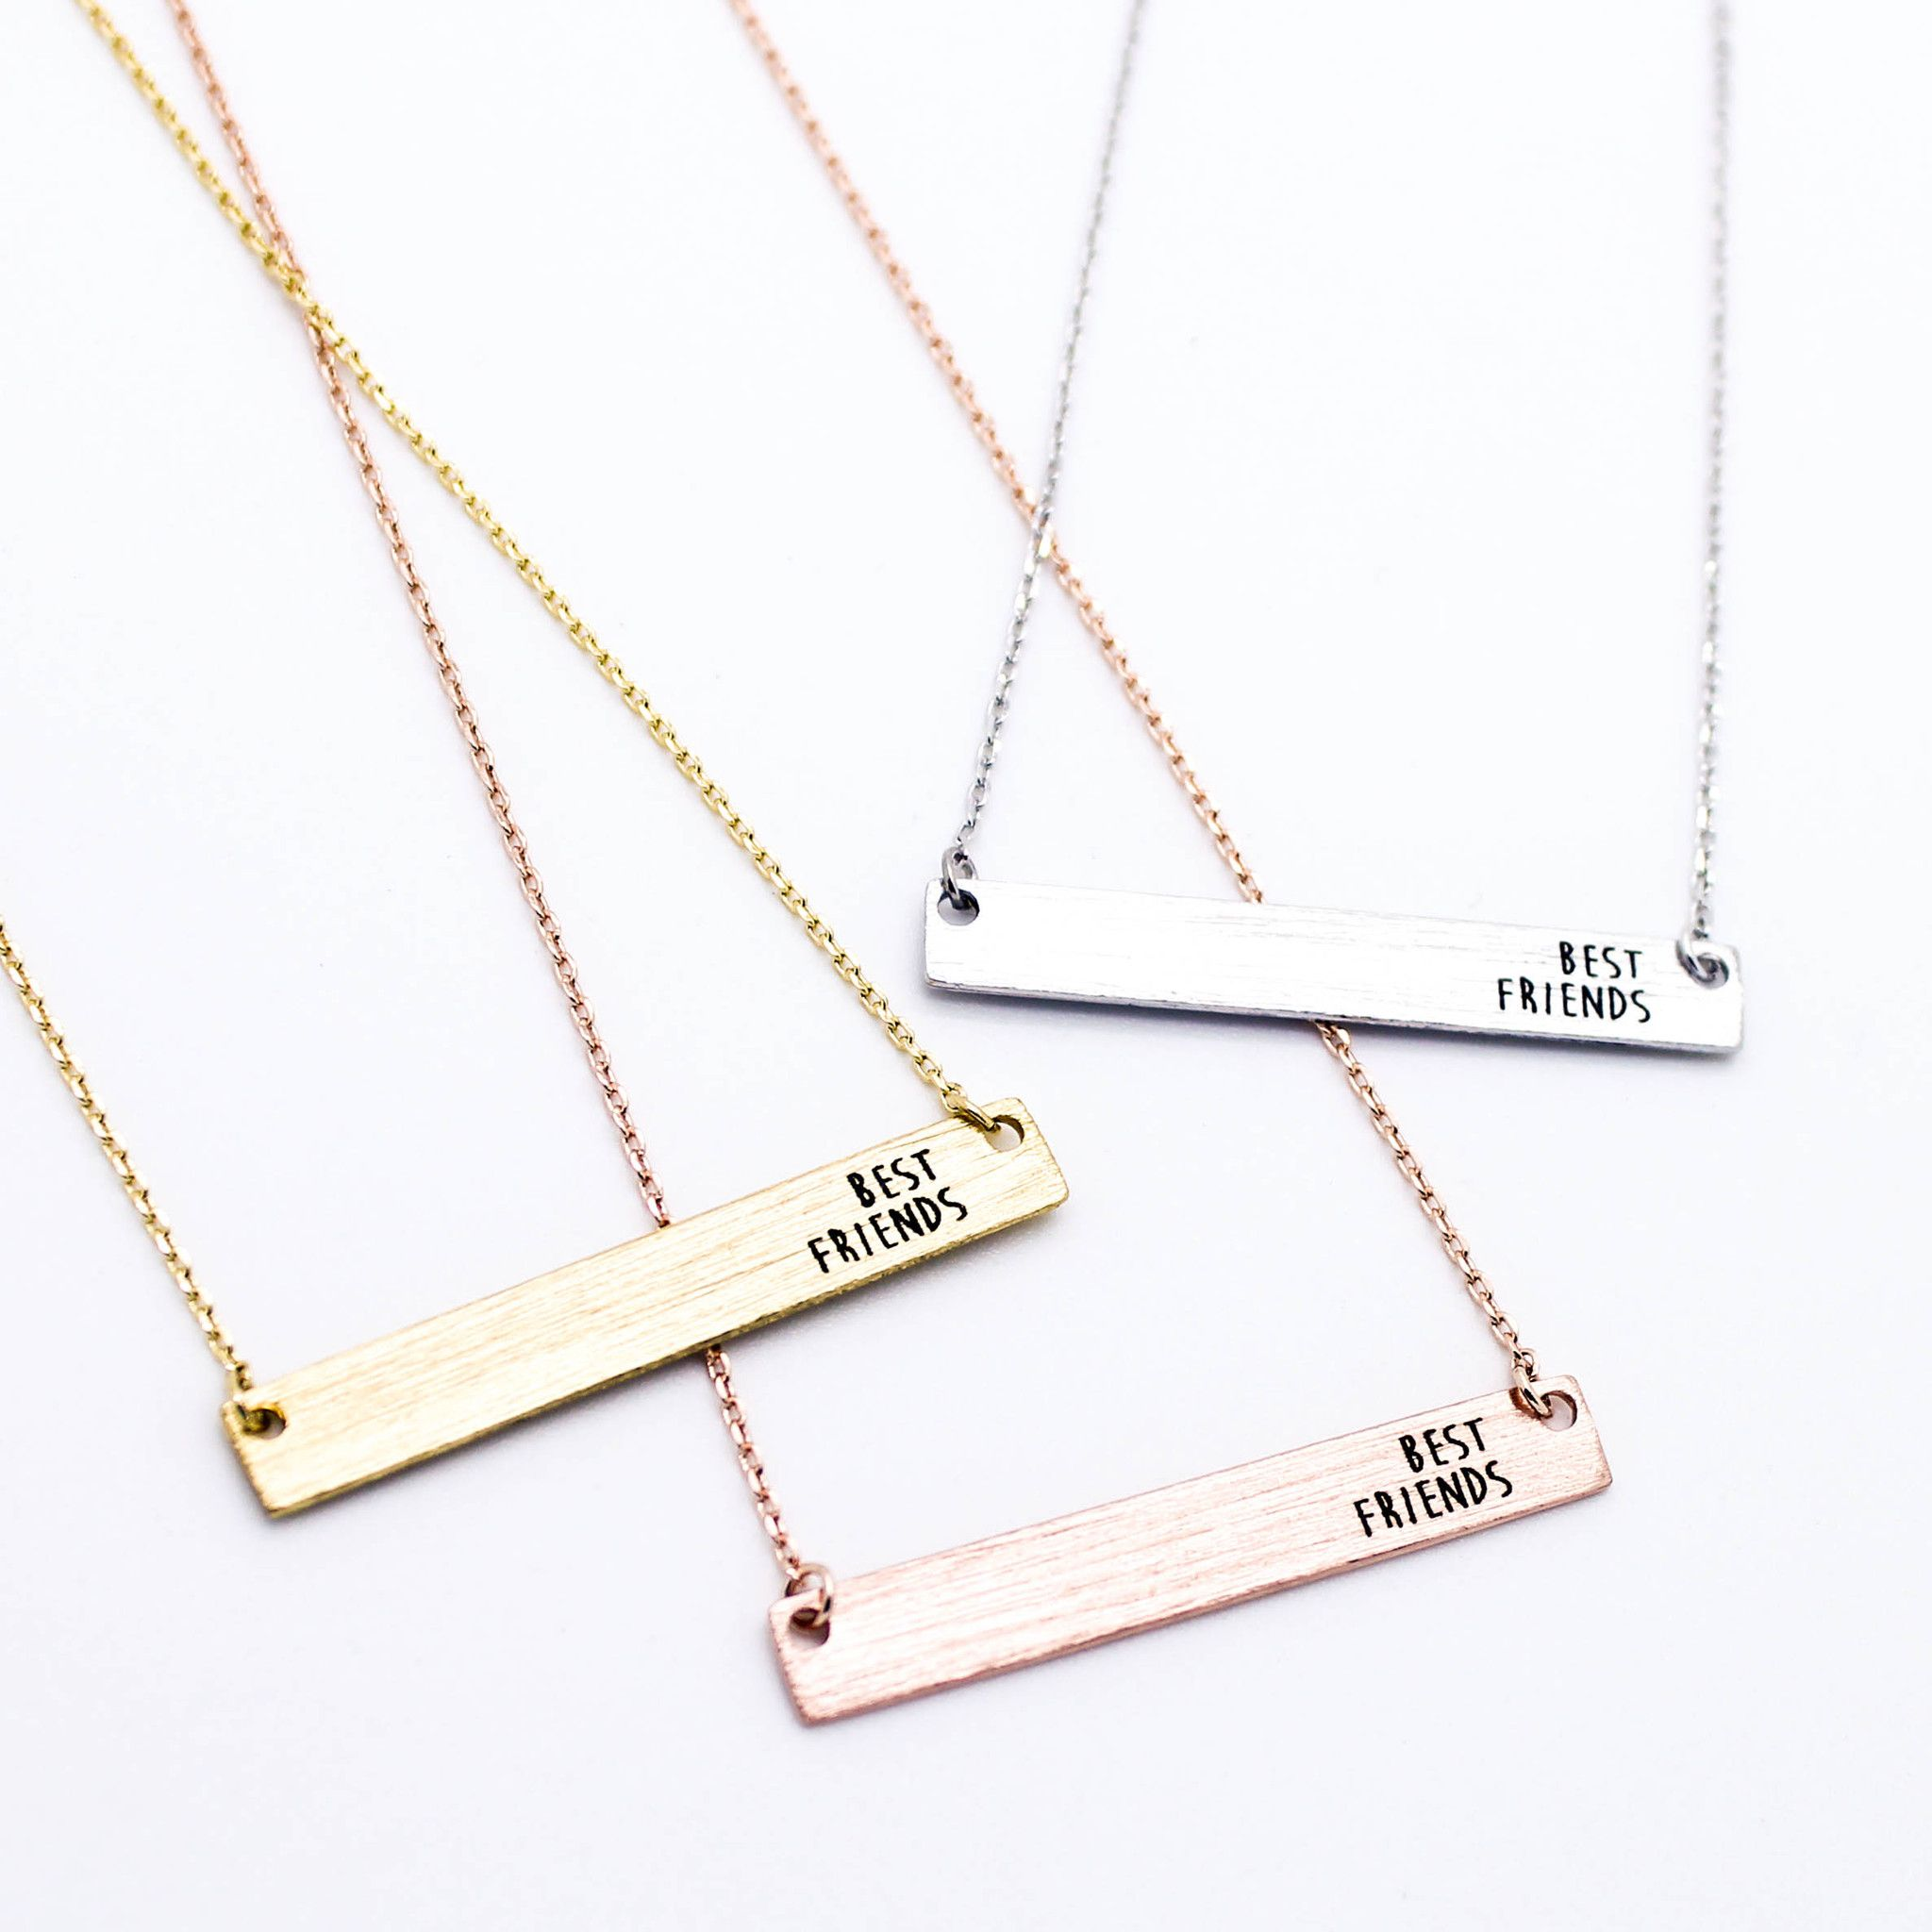 name il necklace silver necklaces handmade numine stamped coordinate characters gold jewelry fullxfull c monogram